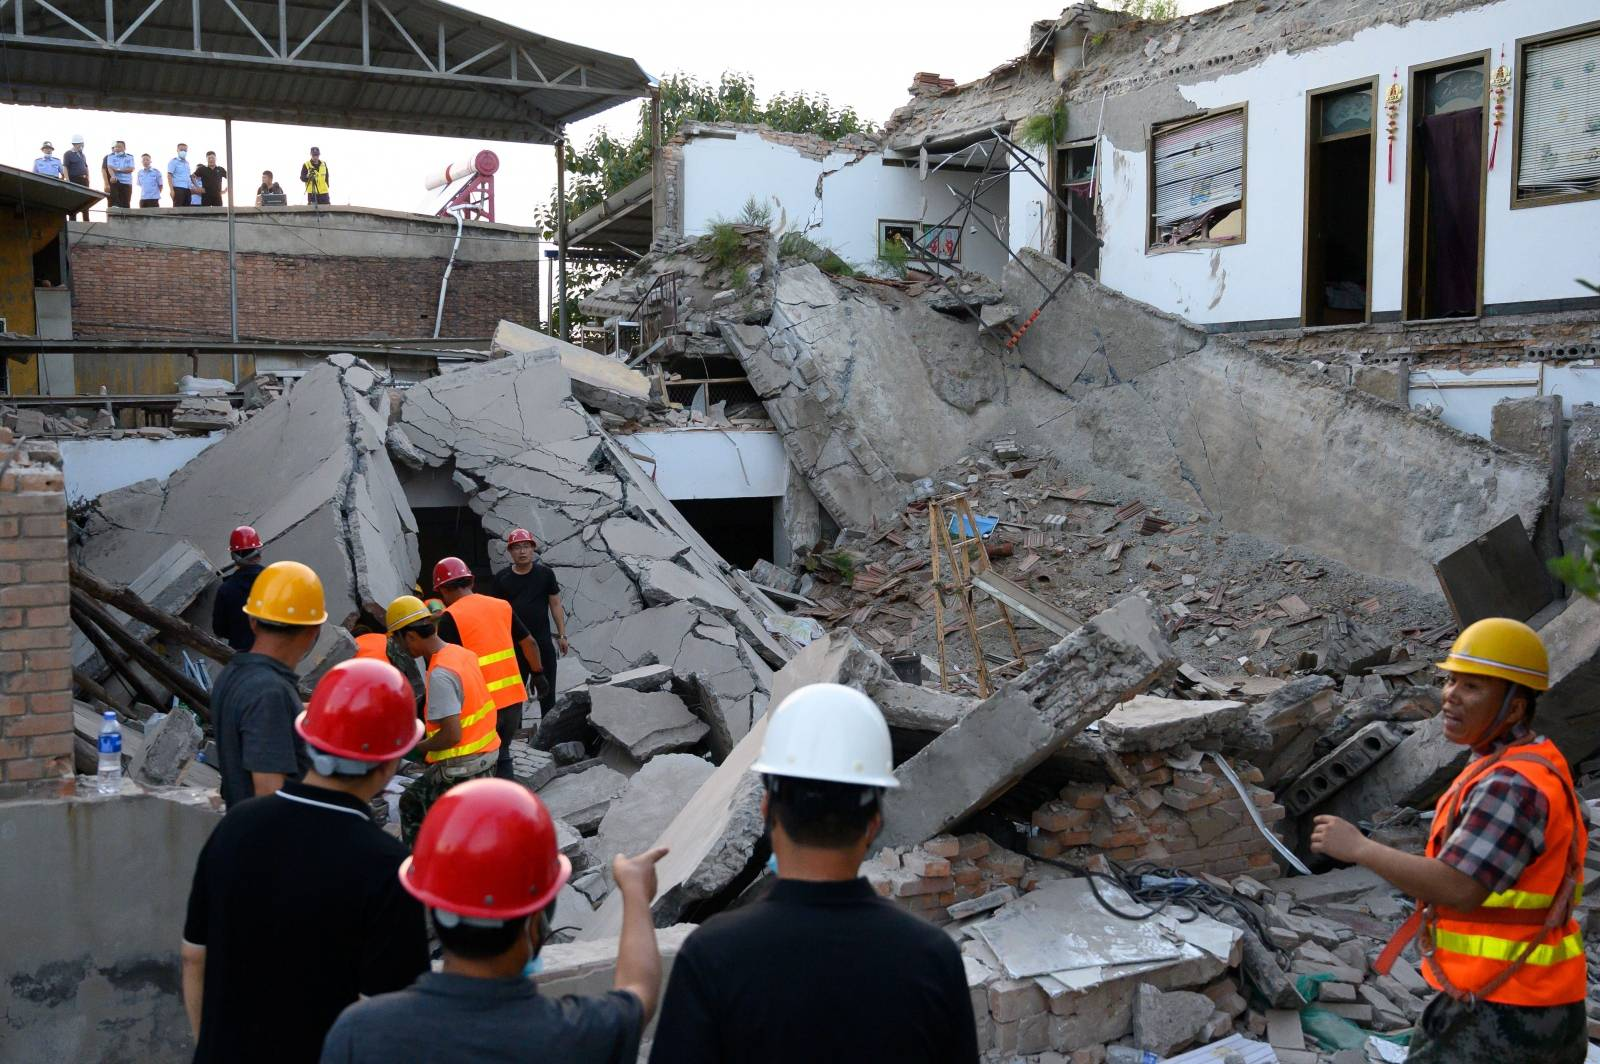 Rescue workers are seen at the site where a restaurant collapsed, in Xiangfen